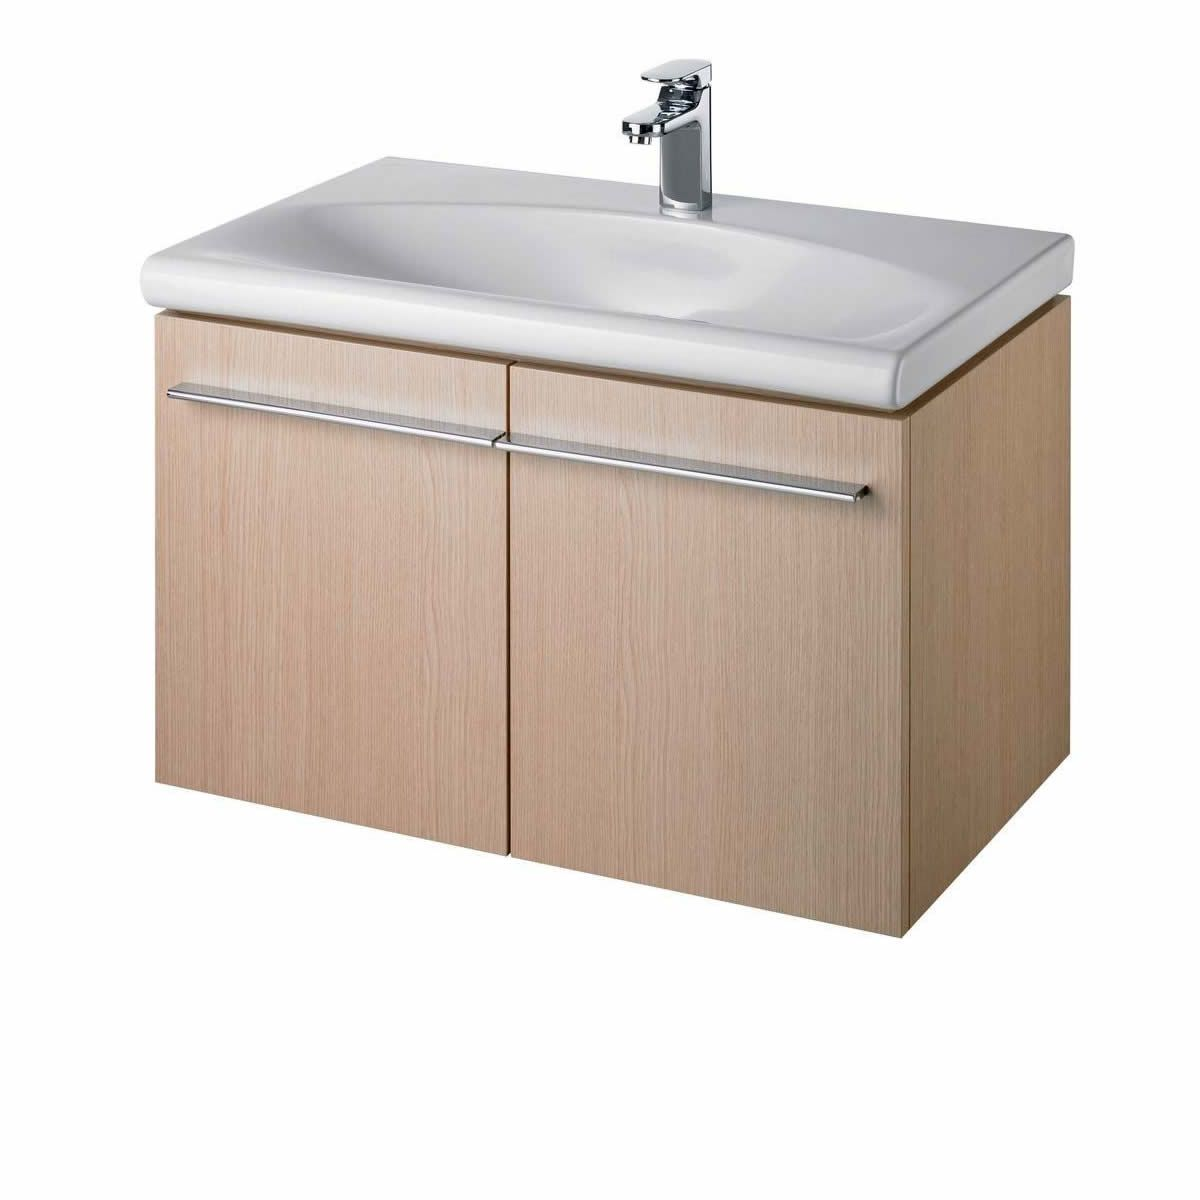 Ideal standard daylight 700mm wall hung vanity unit for Bathroom furniture 700mm